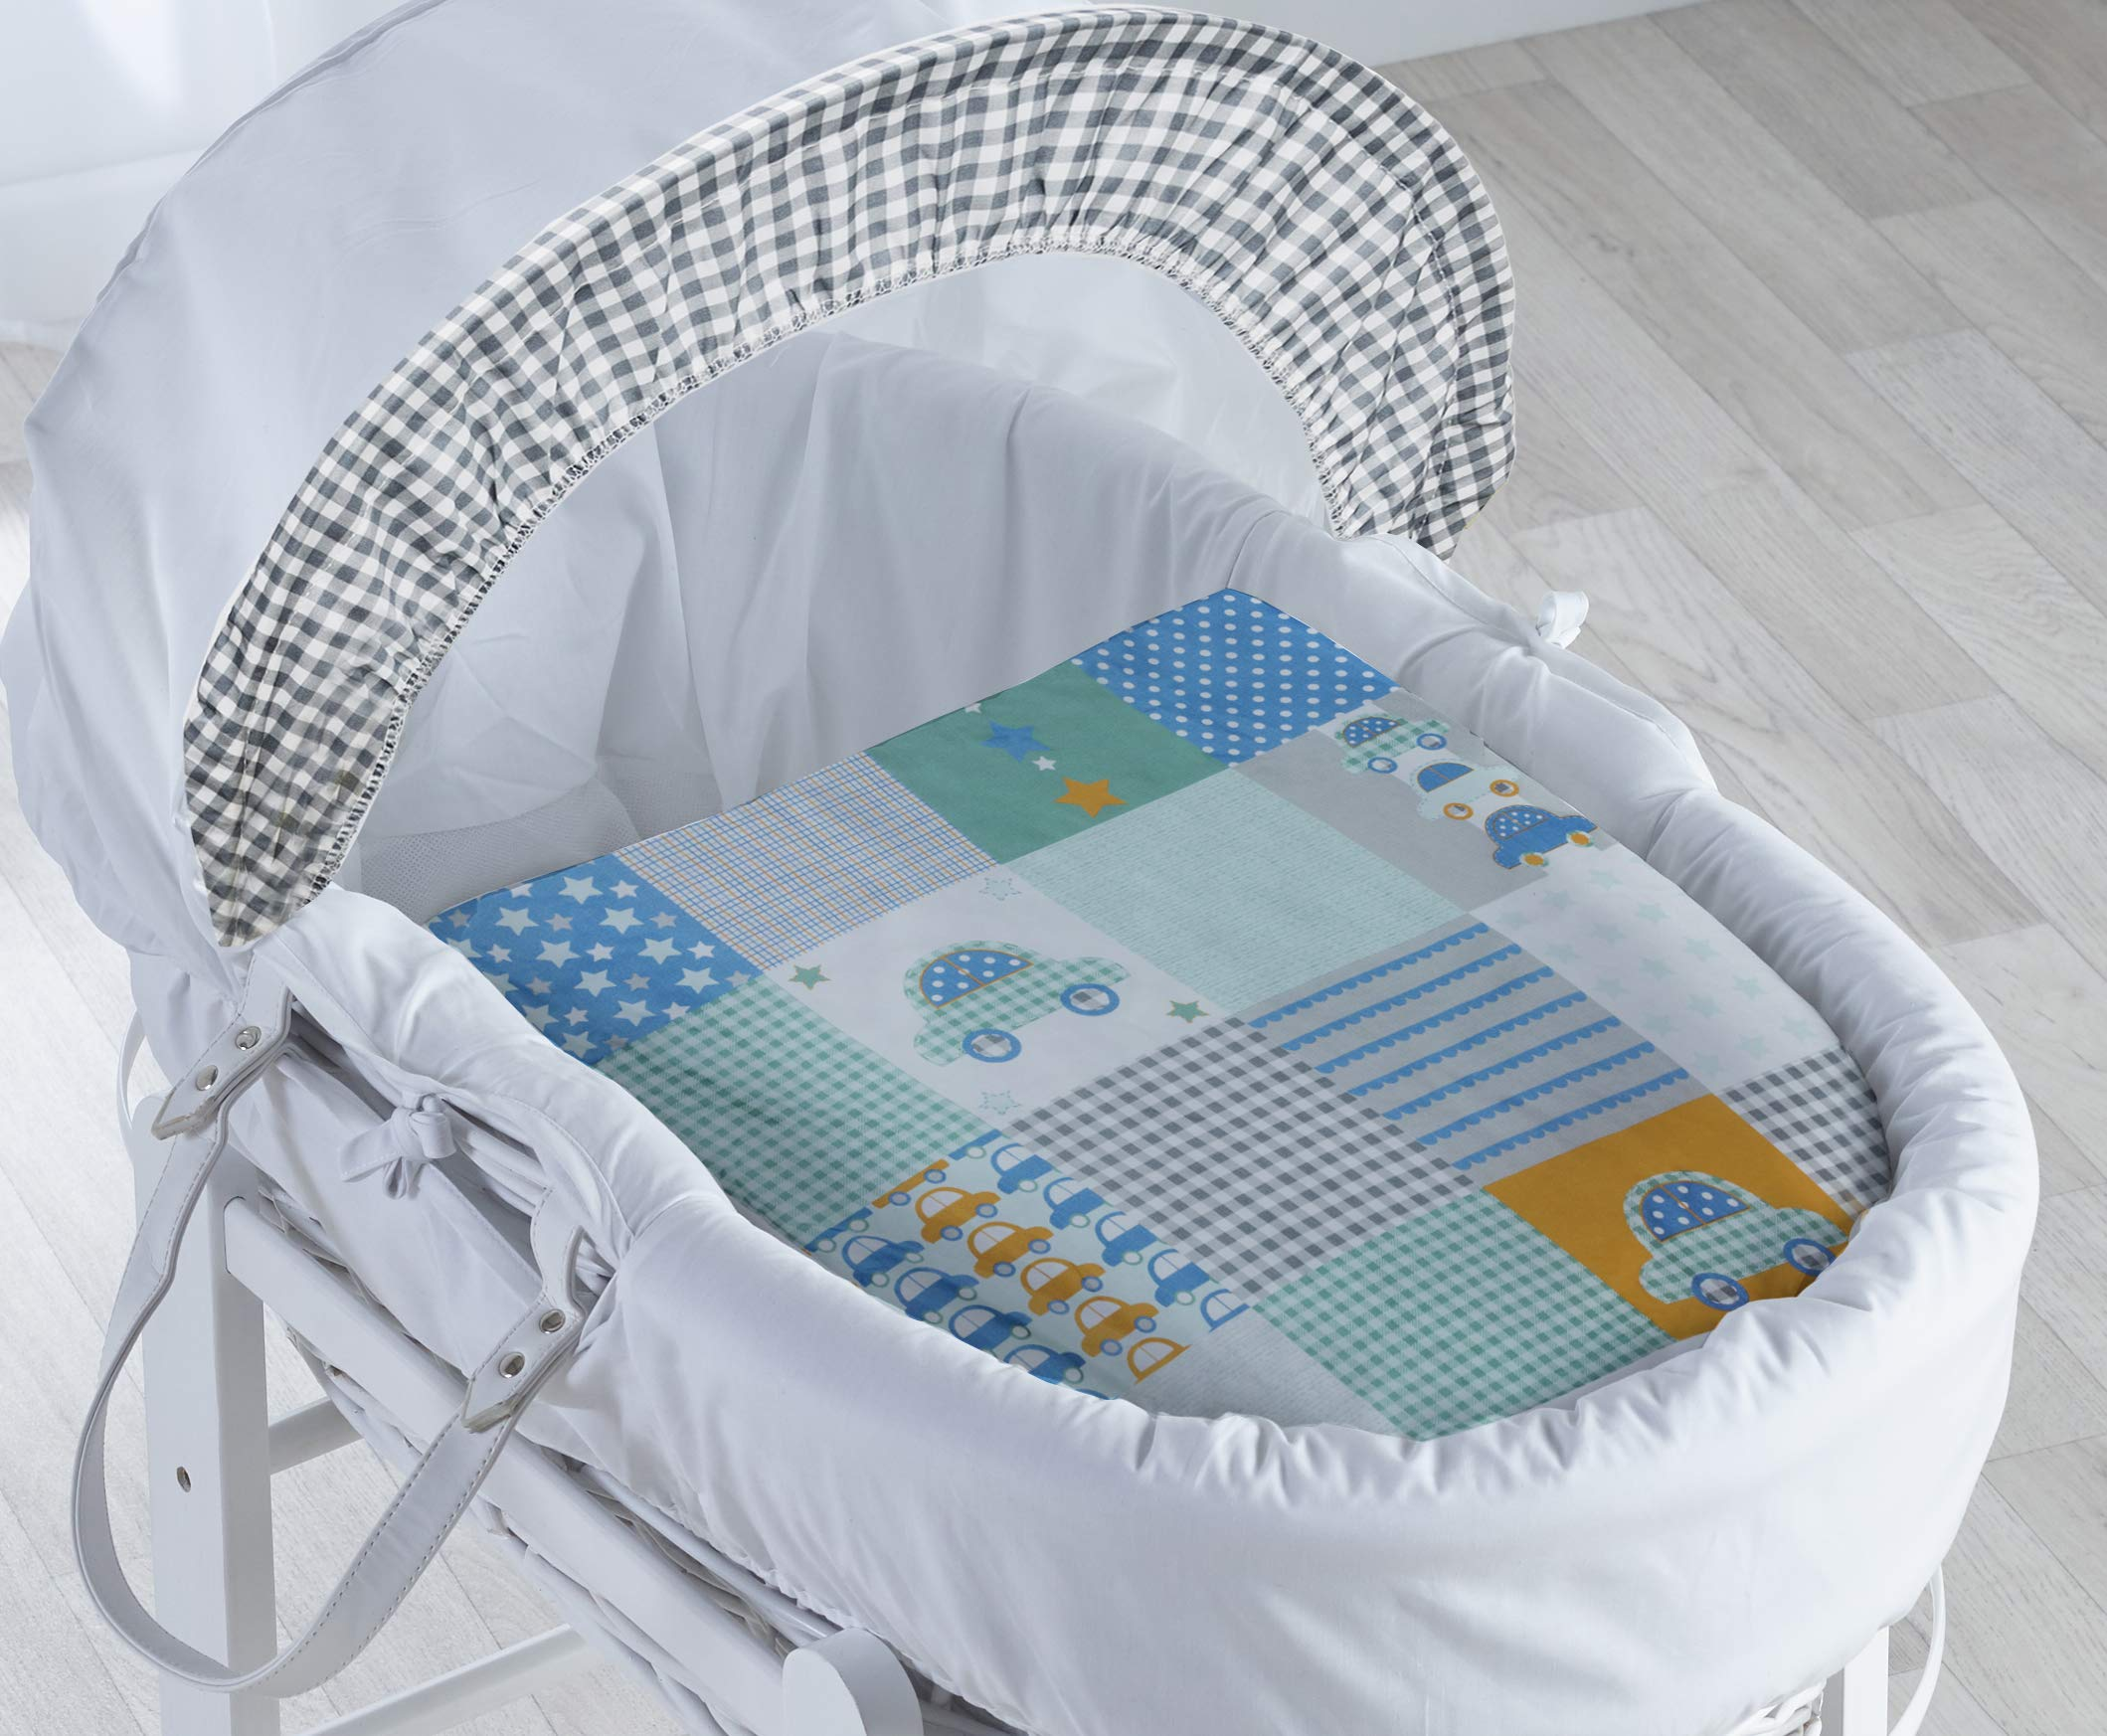 Vintage Cars White Wicker Moses Basket with Deluxe White Rocking Stand Elegant Baby Vintage style Elegant Baby Exclusive moses basket Opulent cotton blend fabric with a luxurious soft padded surround Unique adjustable deluxe rocking stand with soothing front to back motion 2